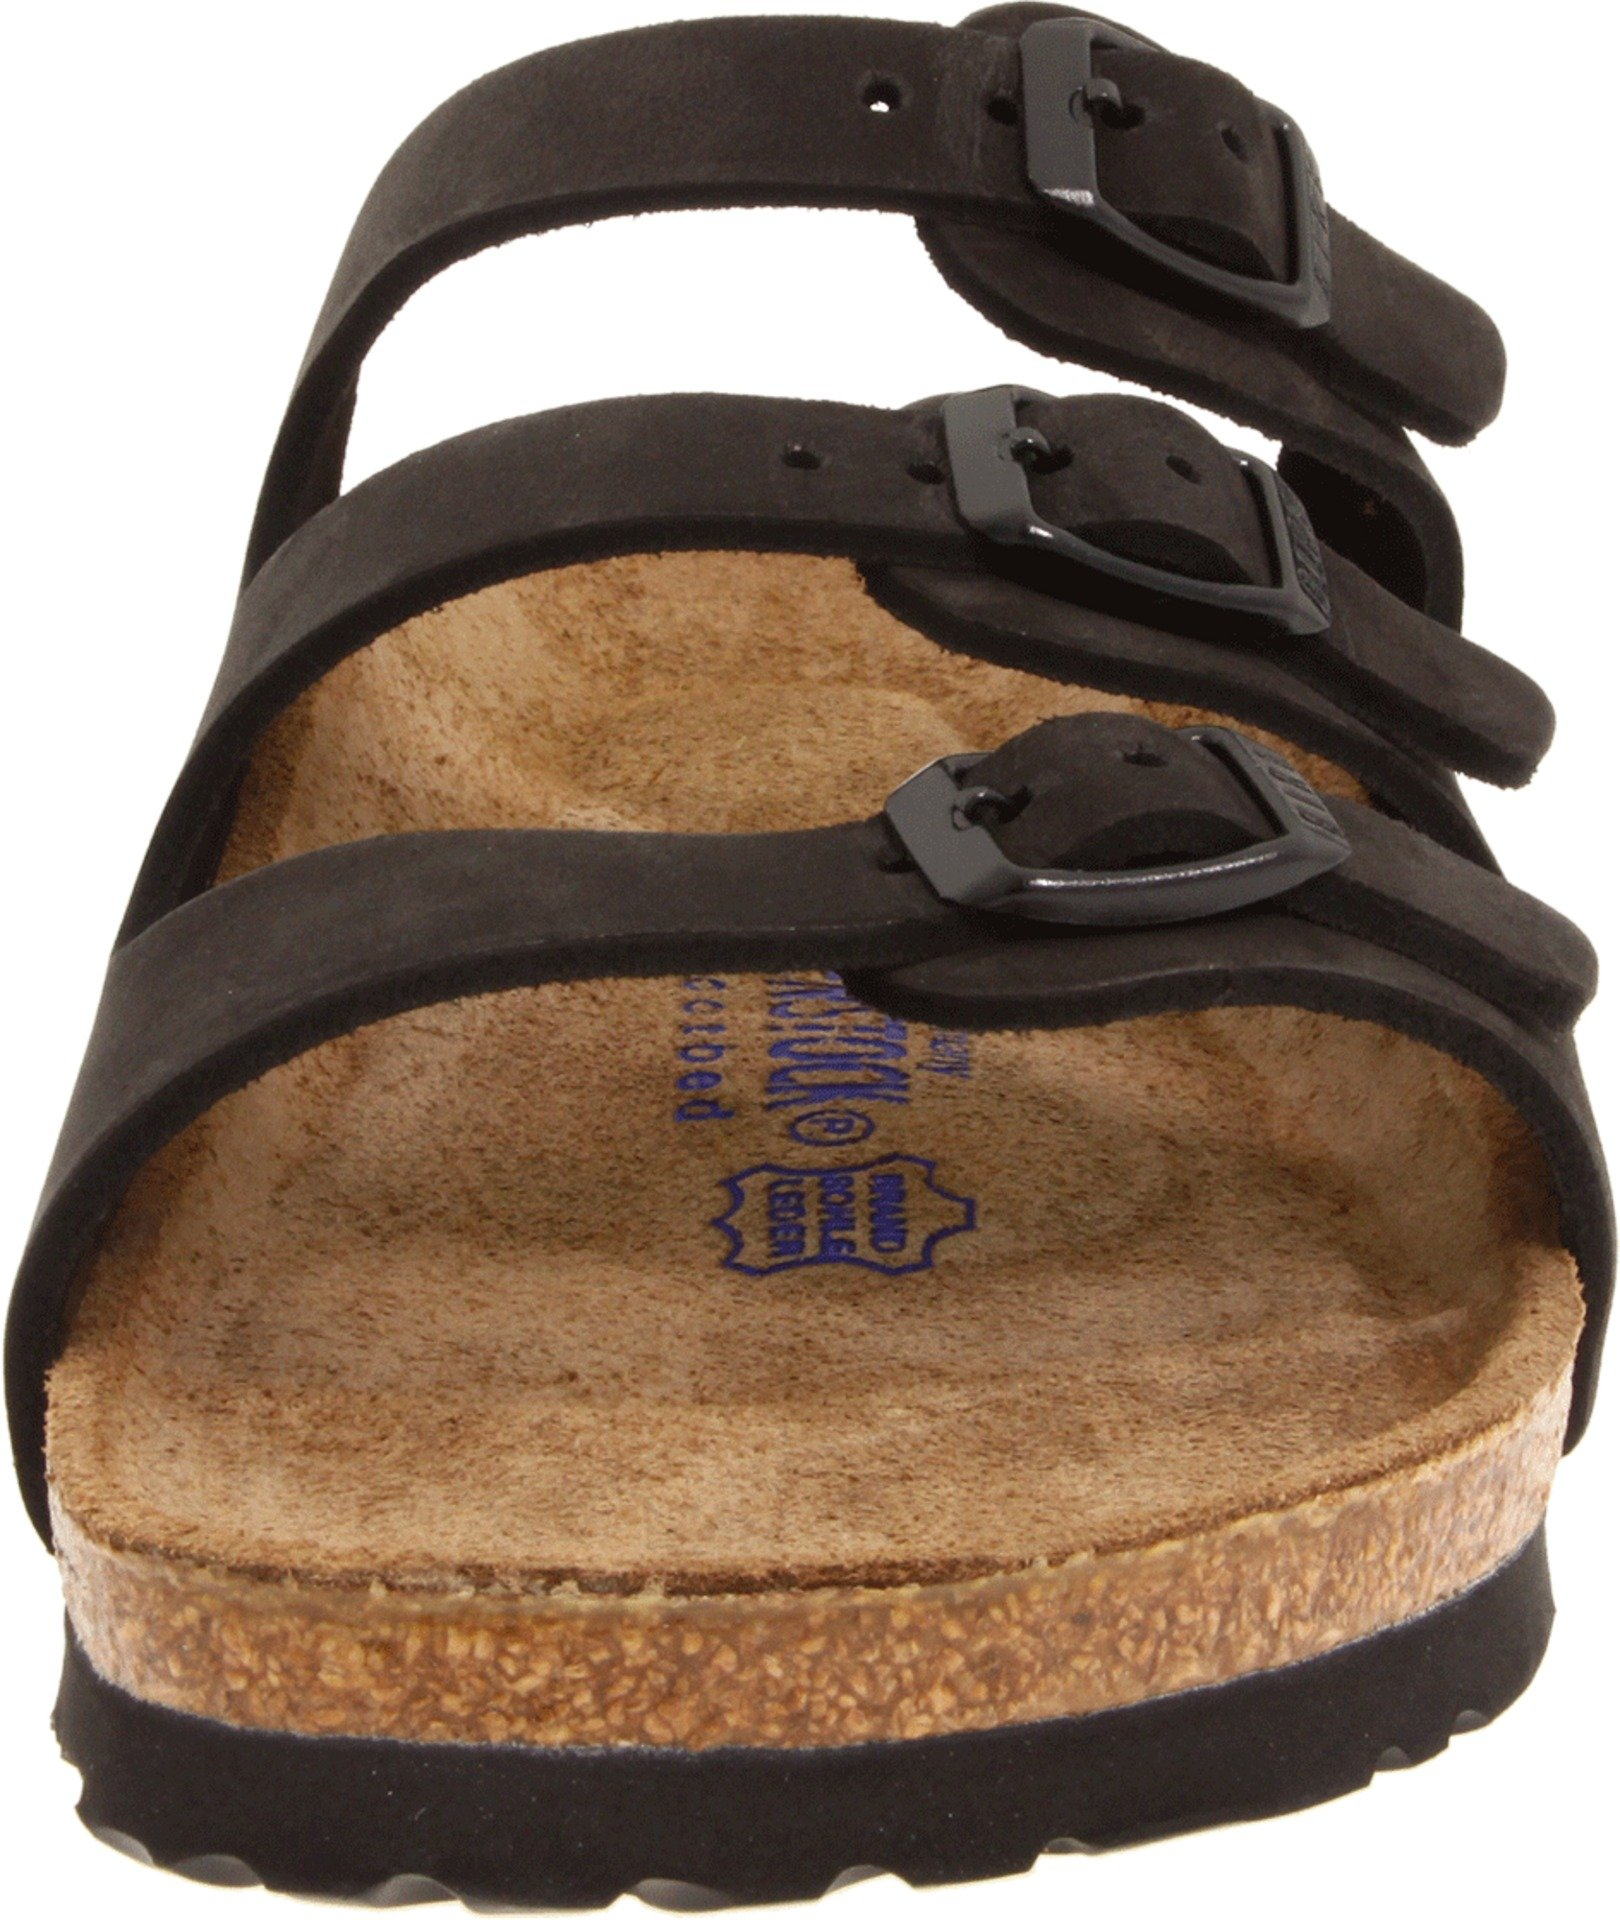 Birkenstock Women's Florida Soft Footbed Birko-Flor  Black Nubuck Sandals - 37 M EU / 6-6.5 B(M) US by Birkenstock (Image #4)